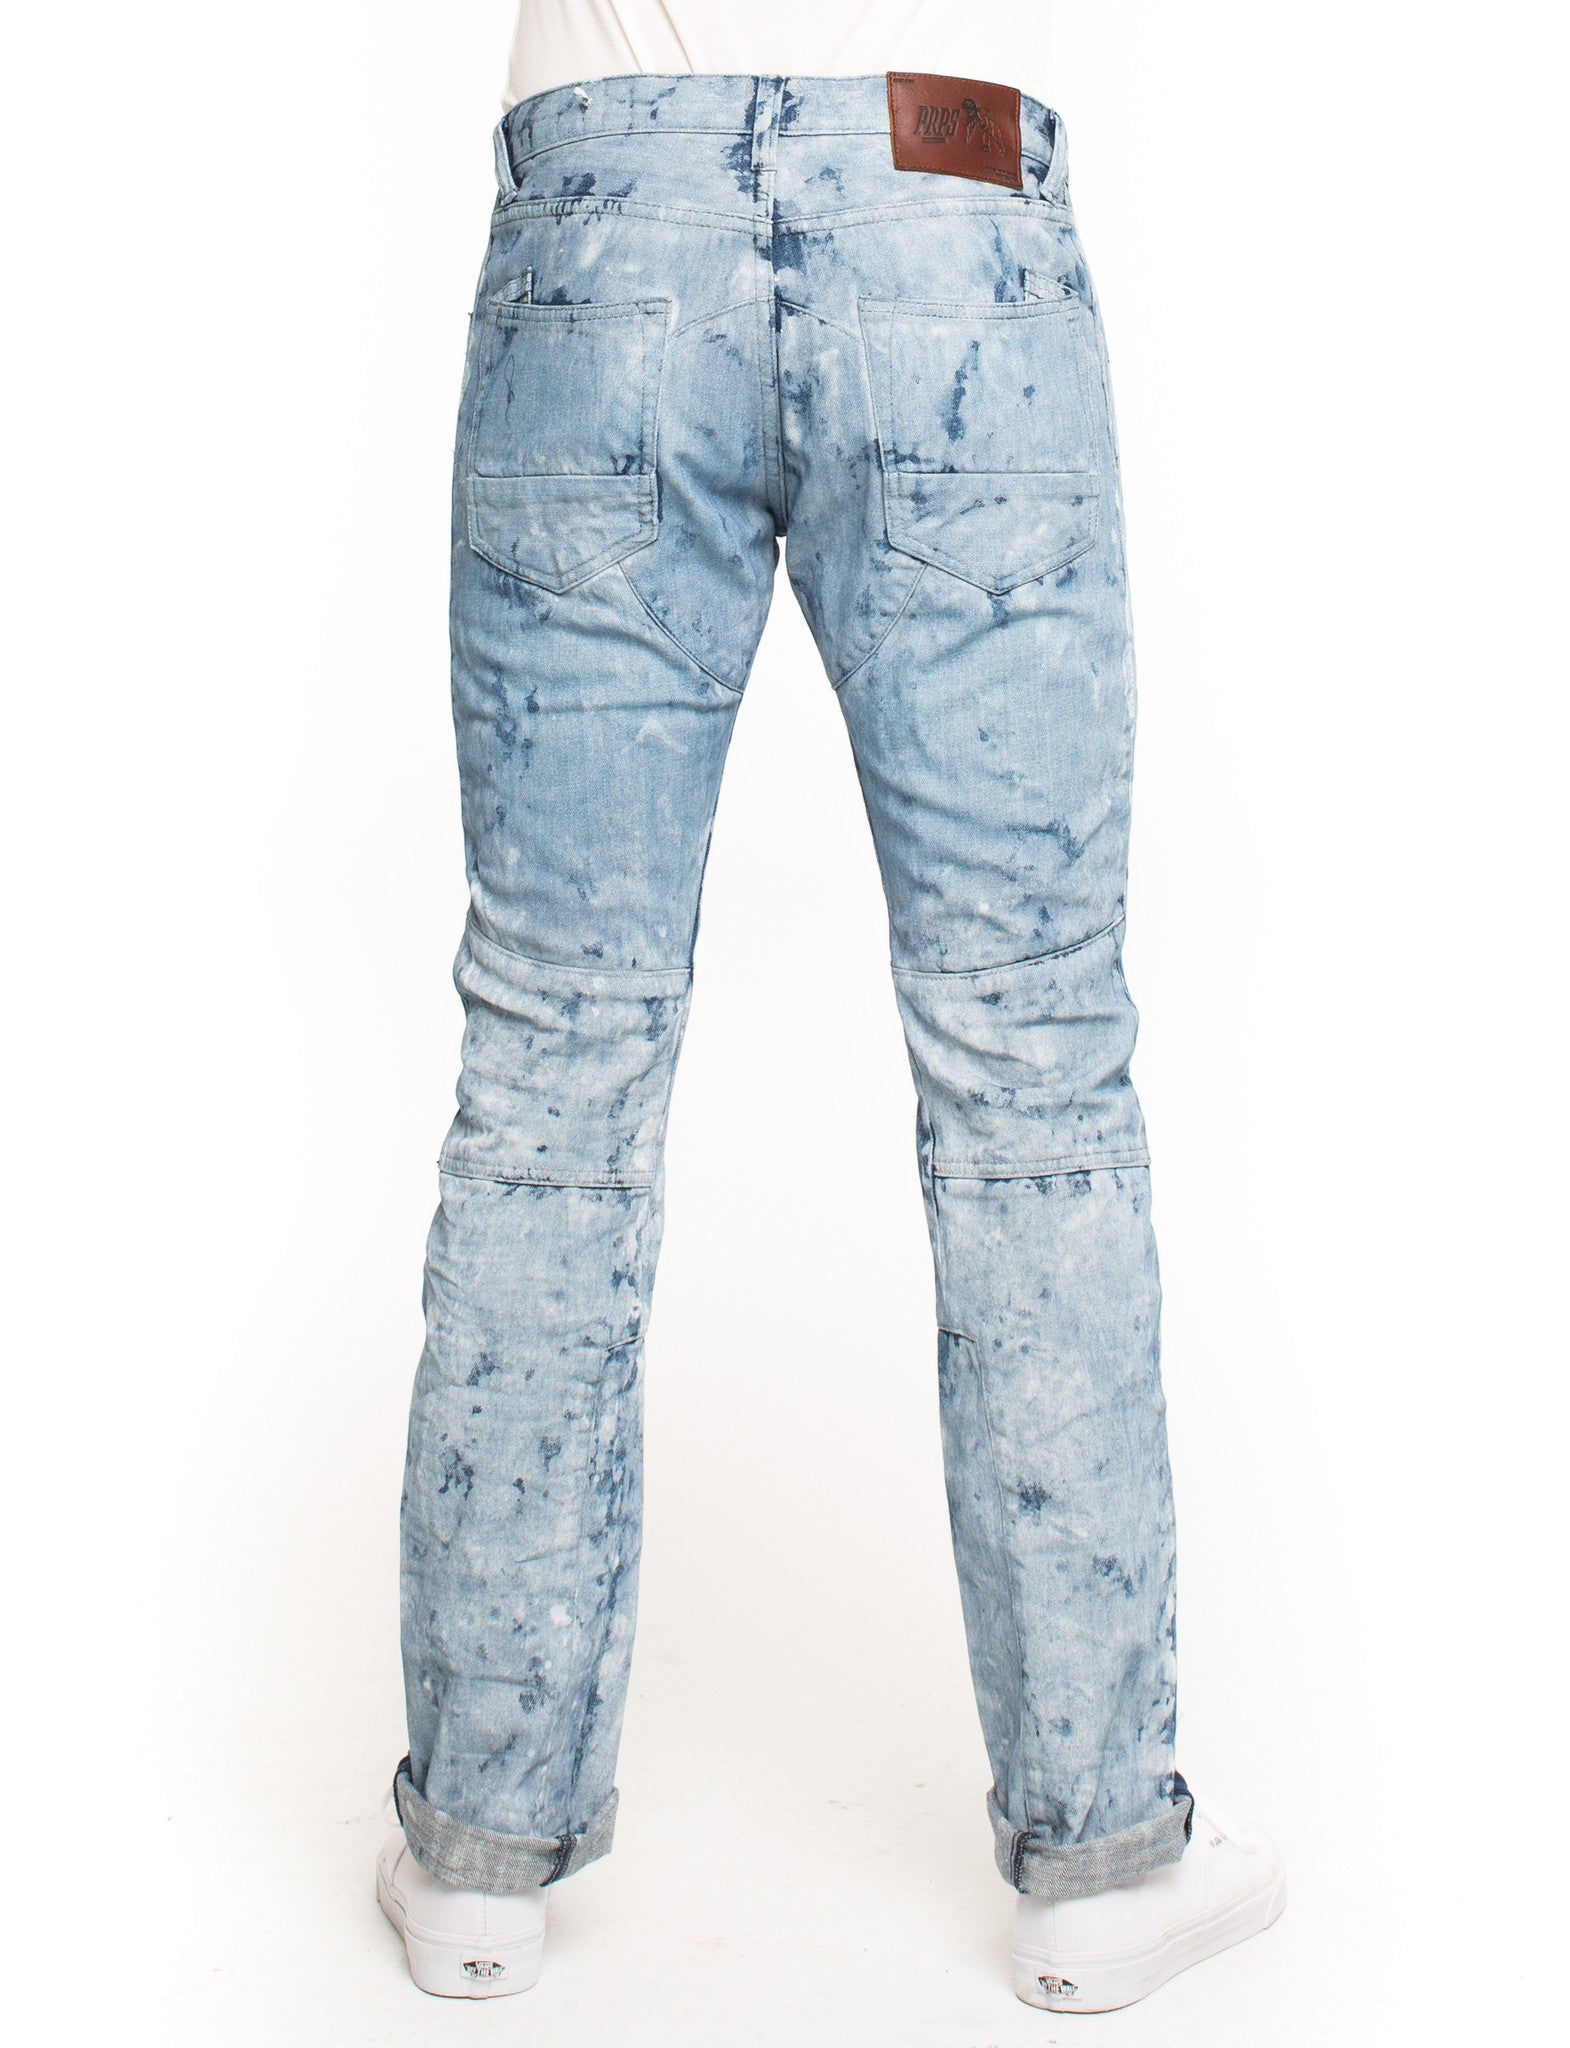 Prps - Demon - Turaco - Jeans